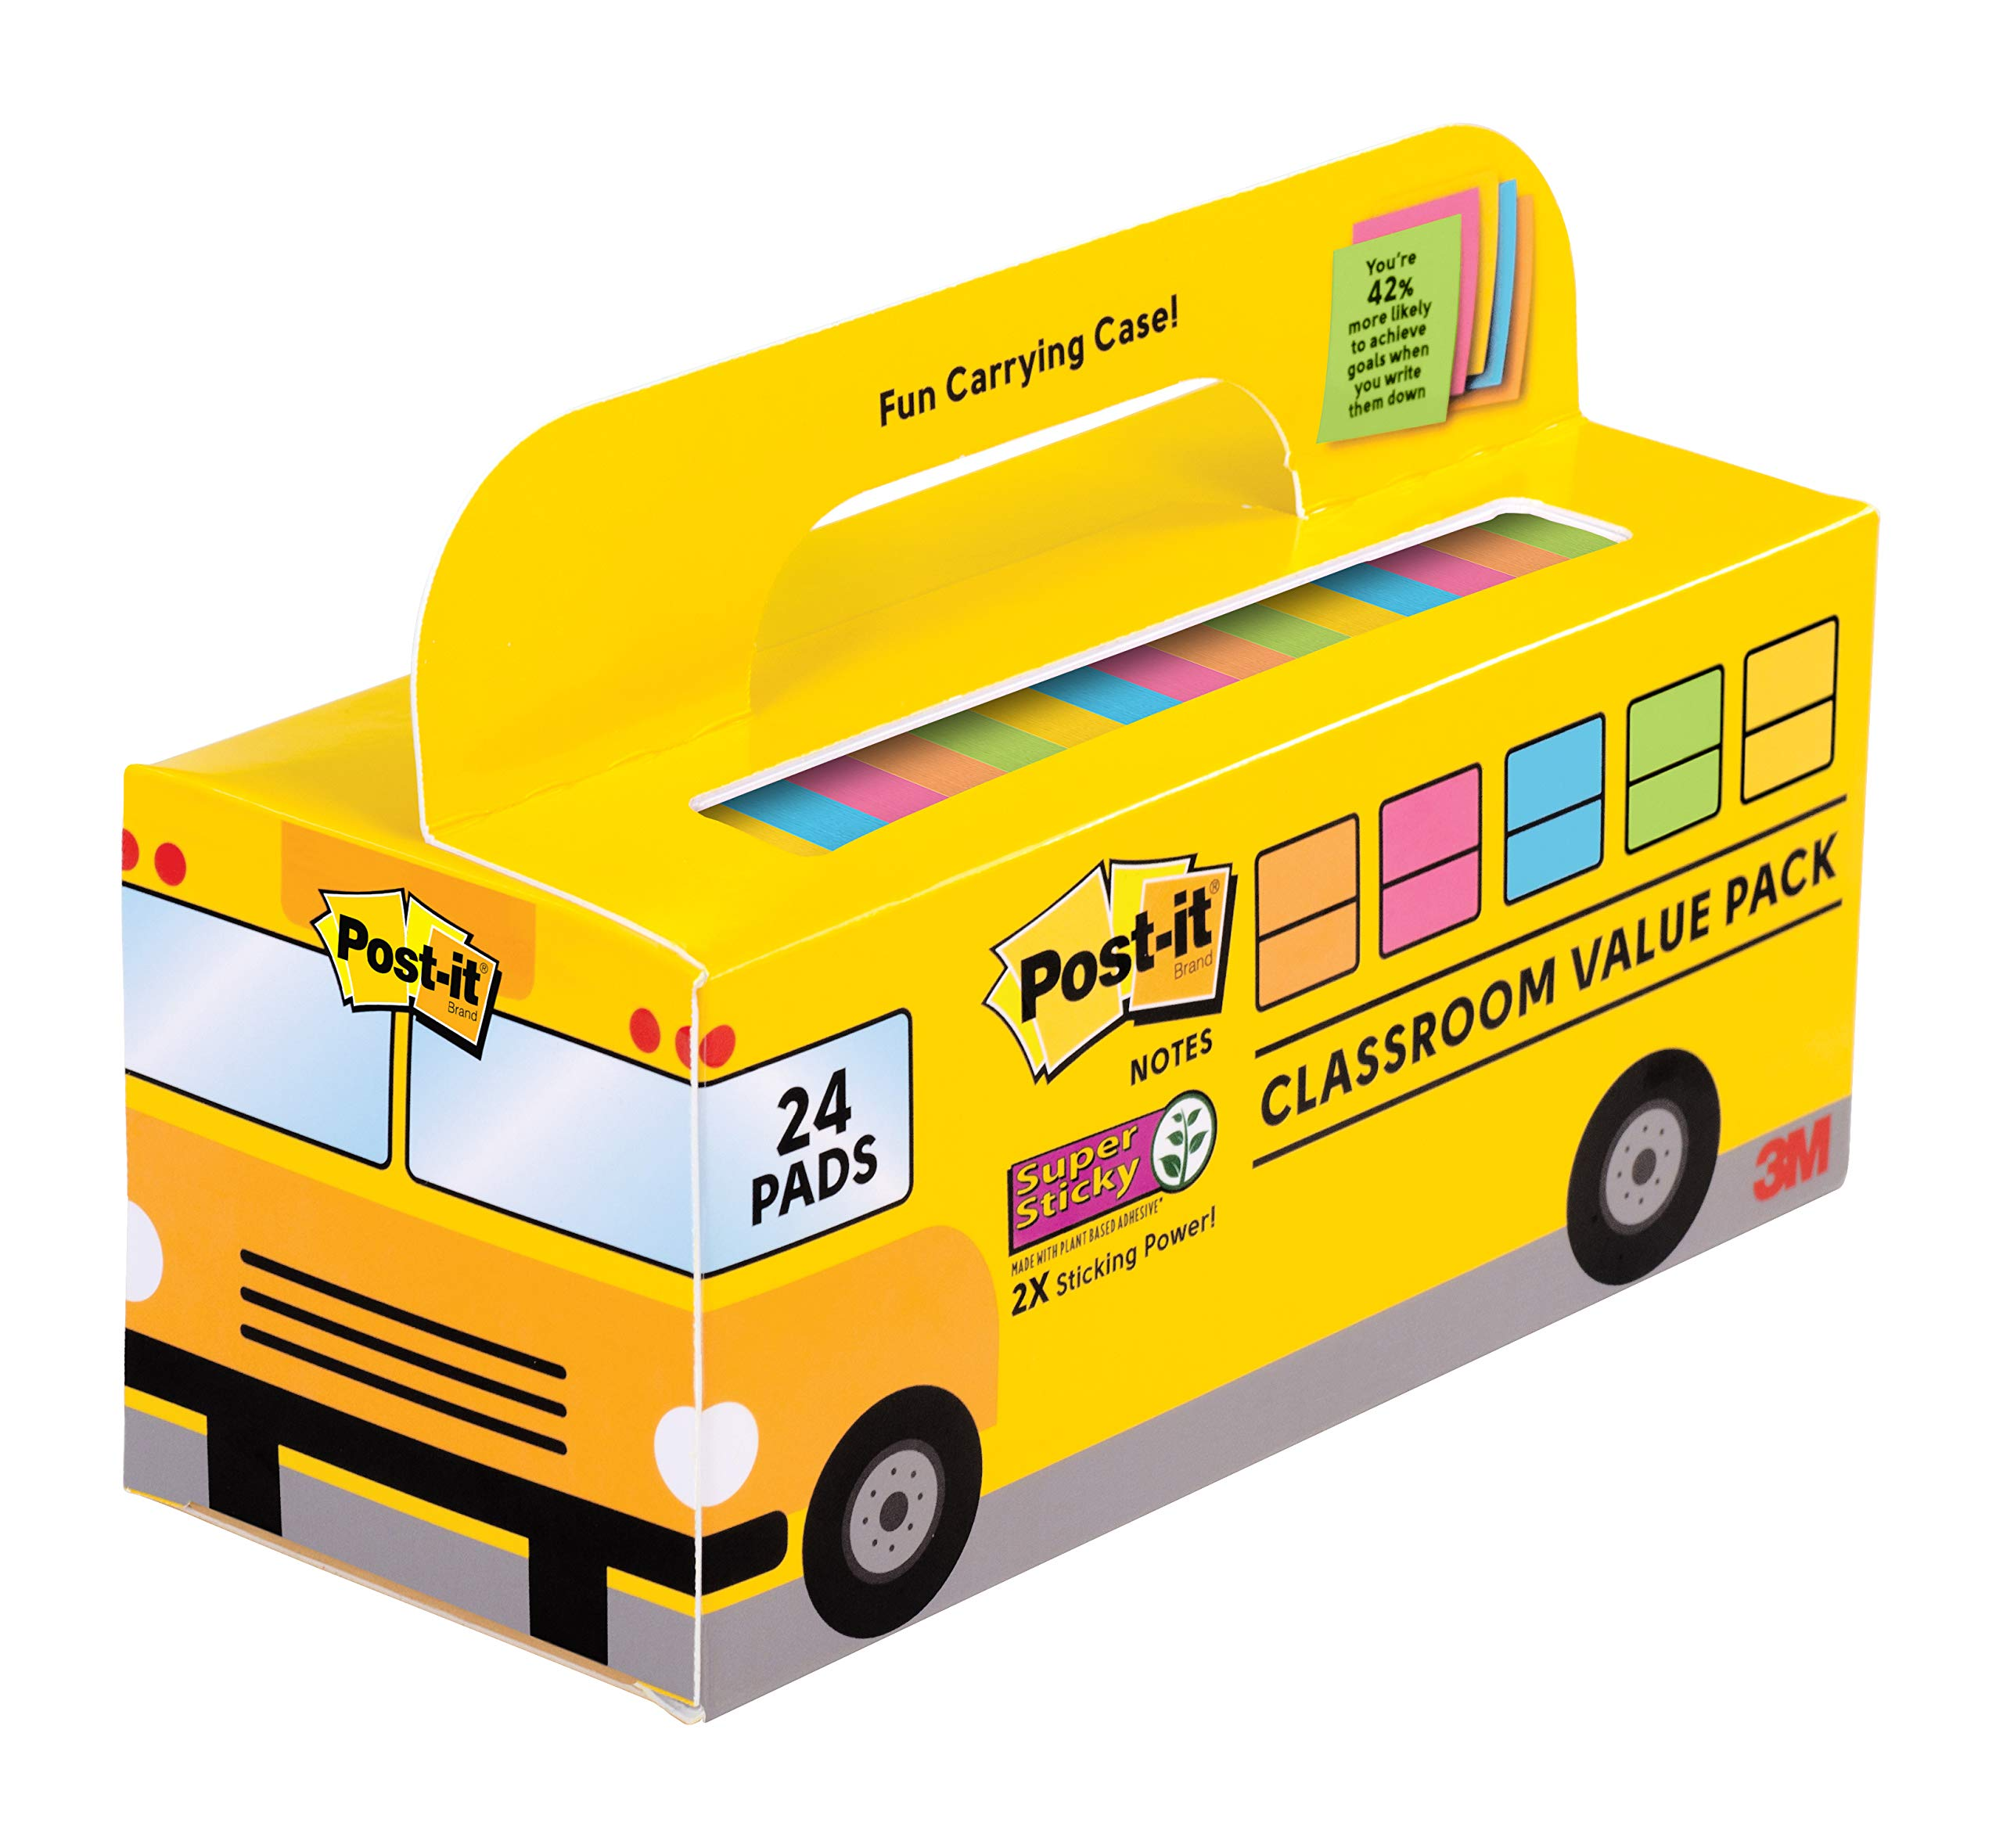 Post-it Super Sticky Notes Value Pack, 24 Pads/Pack, Convenient School Bus Carry and Storage Case, 2X The Sticking Power, 3 in. x 3 in, Bright Colors (654-24SSBUS) by Post-it